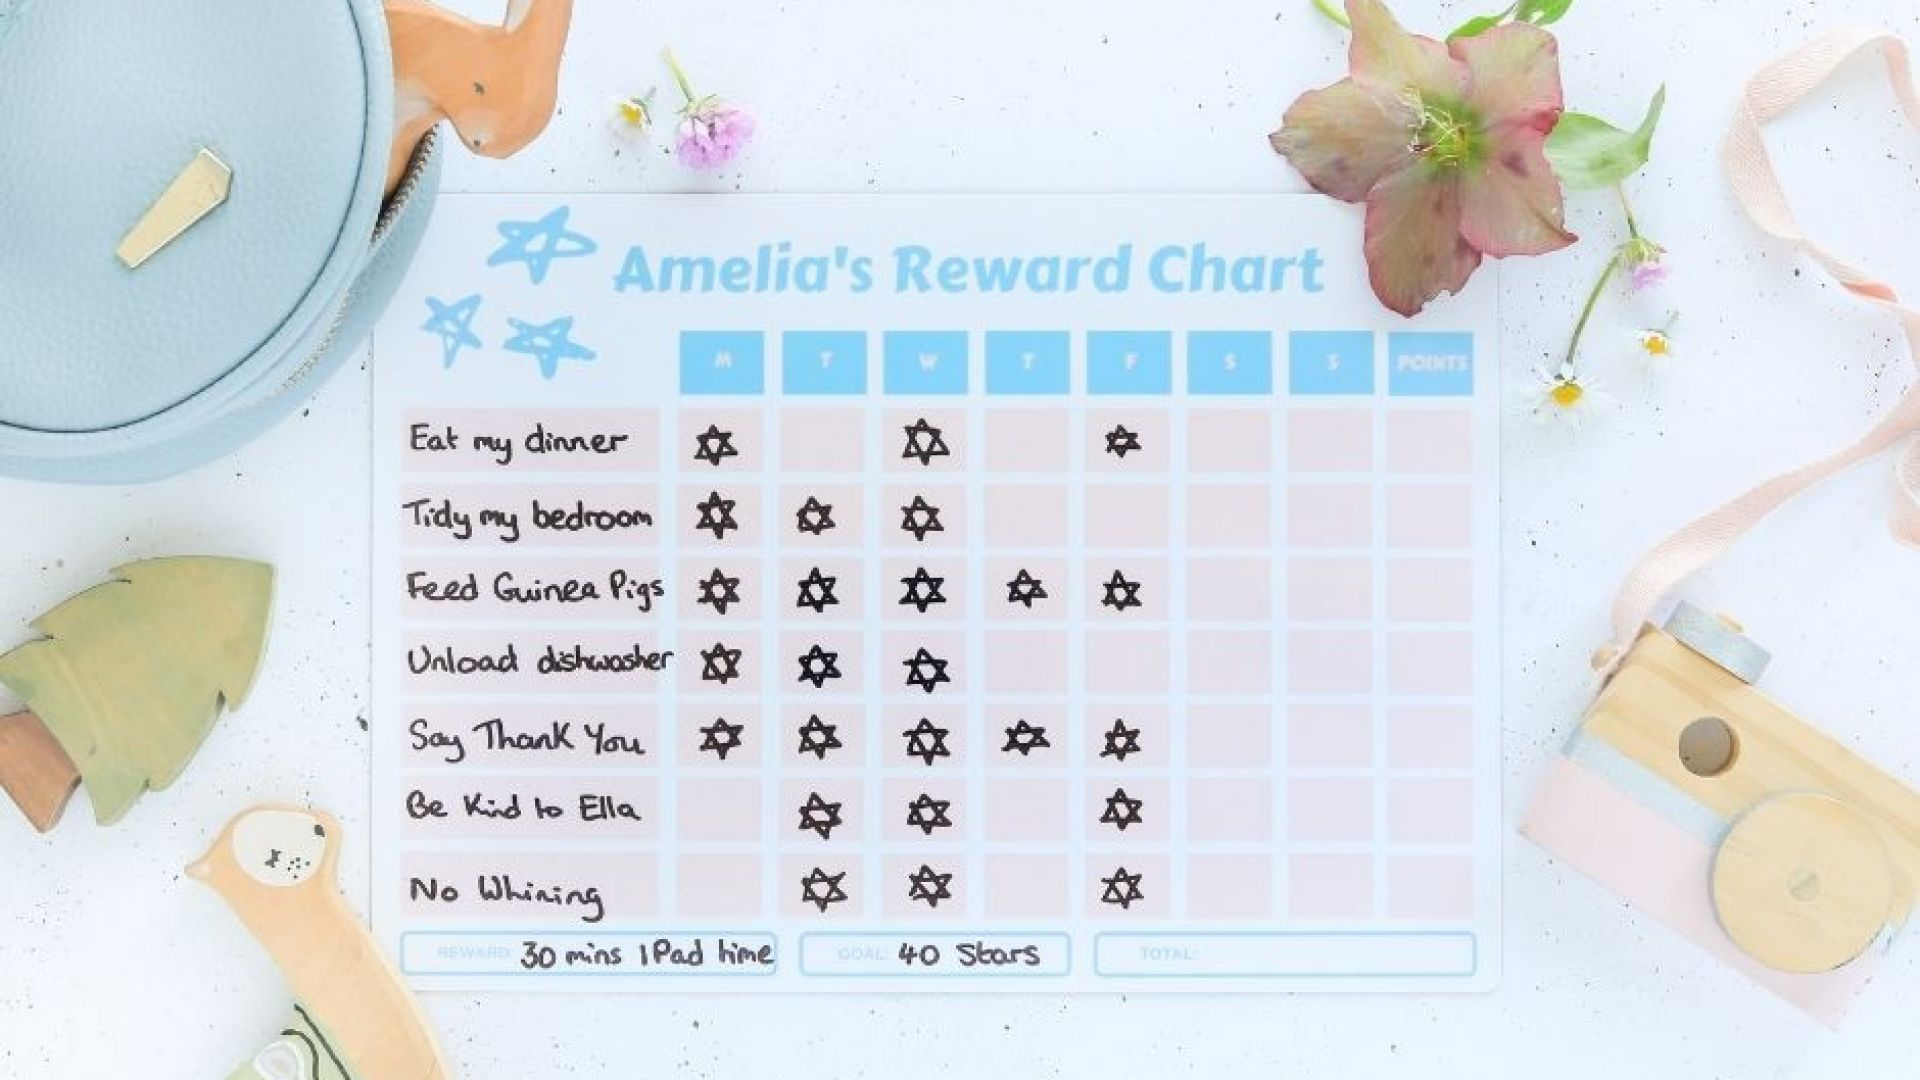 Do Reward Charts Work?